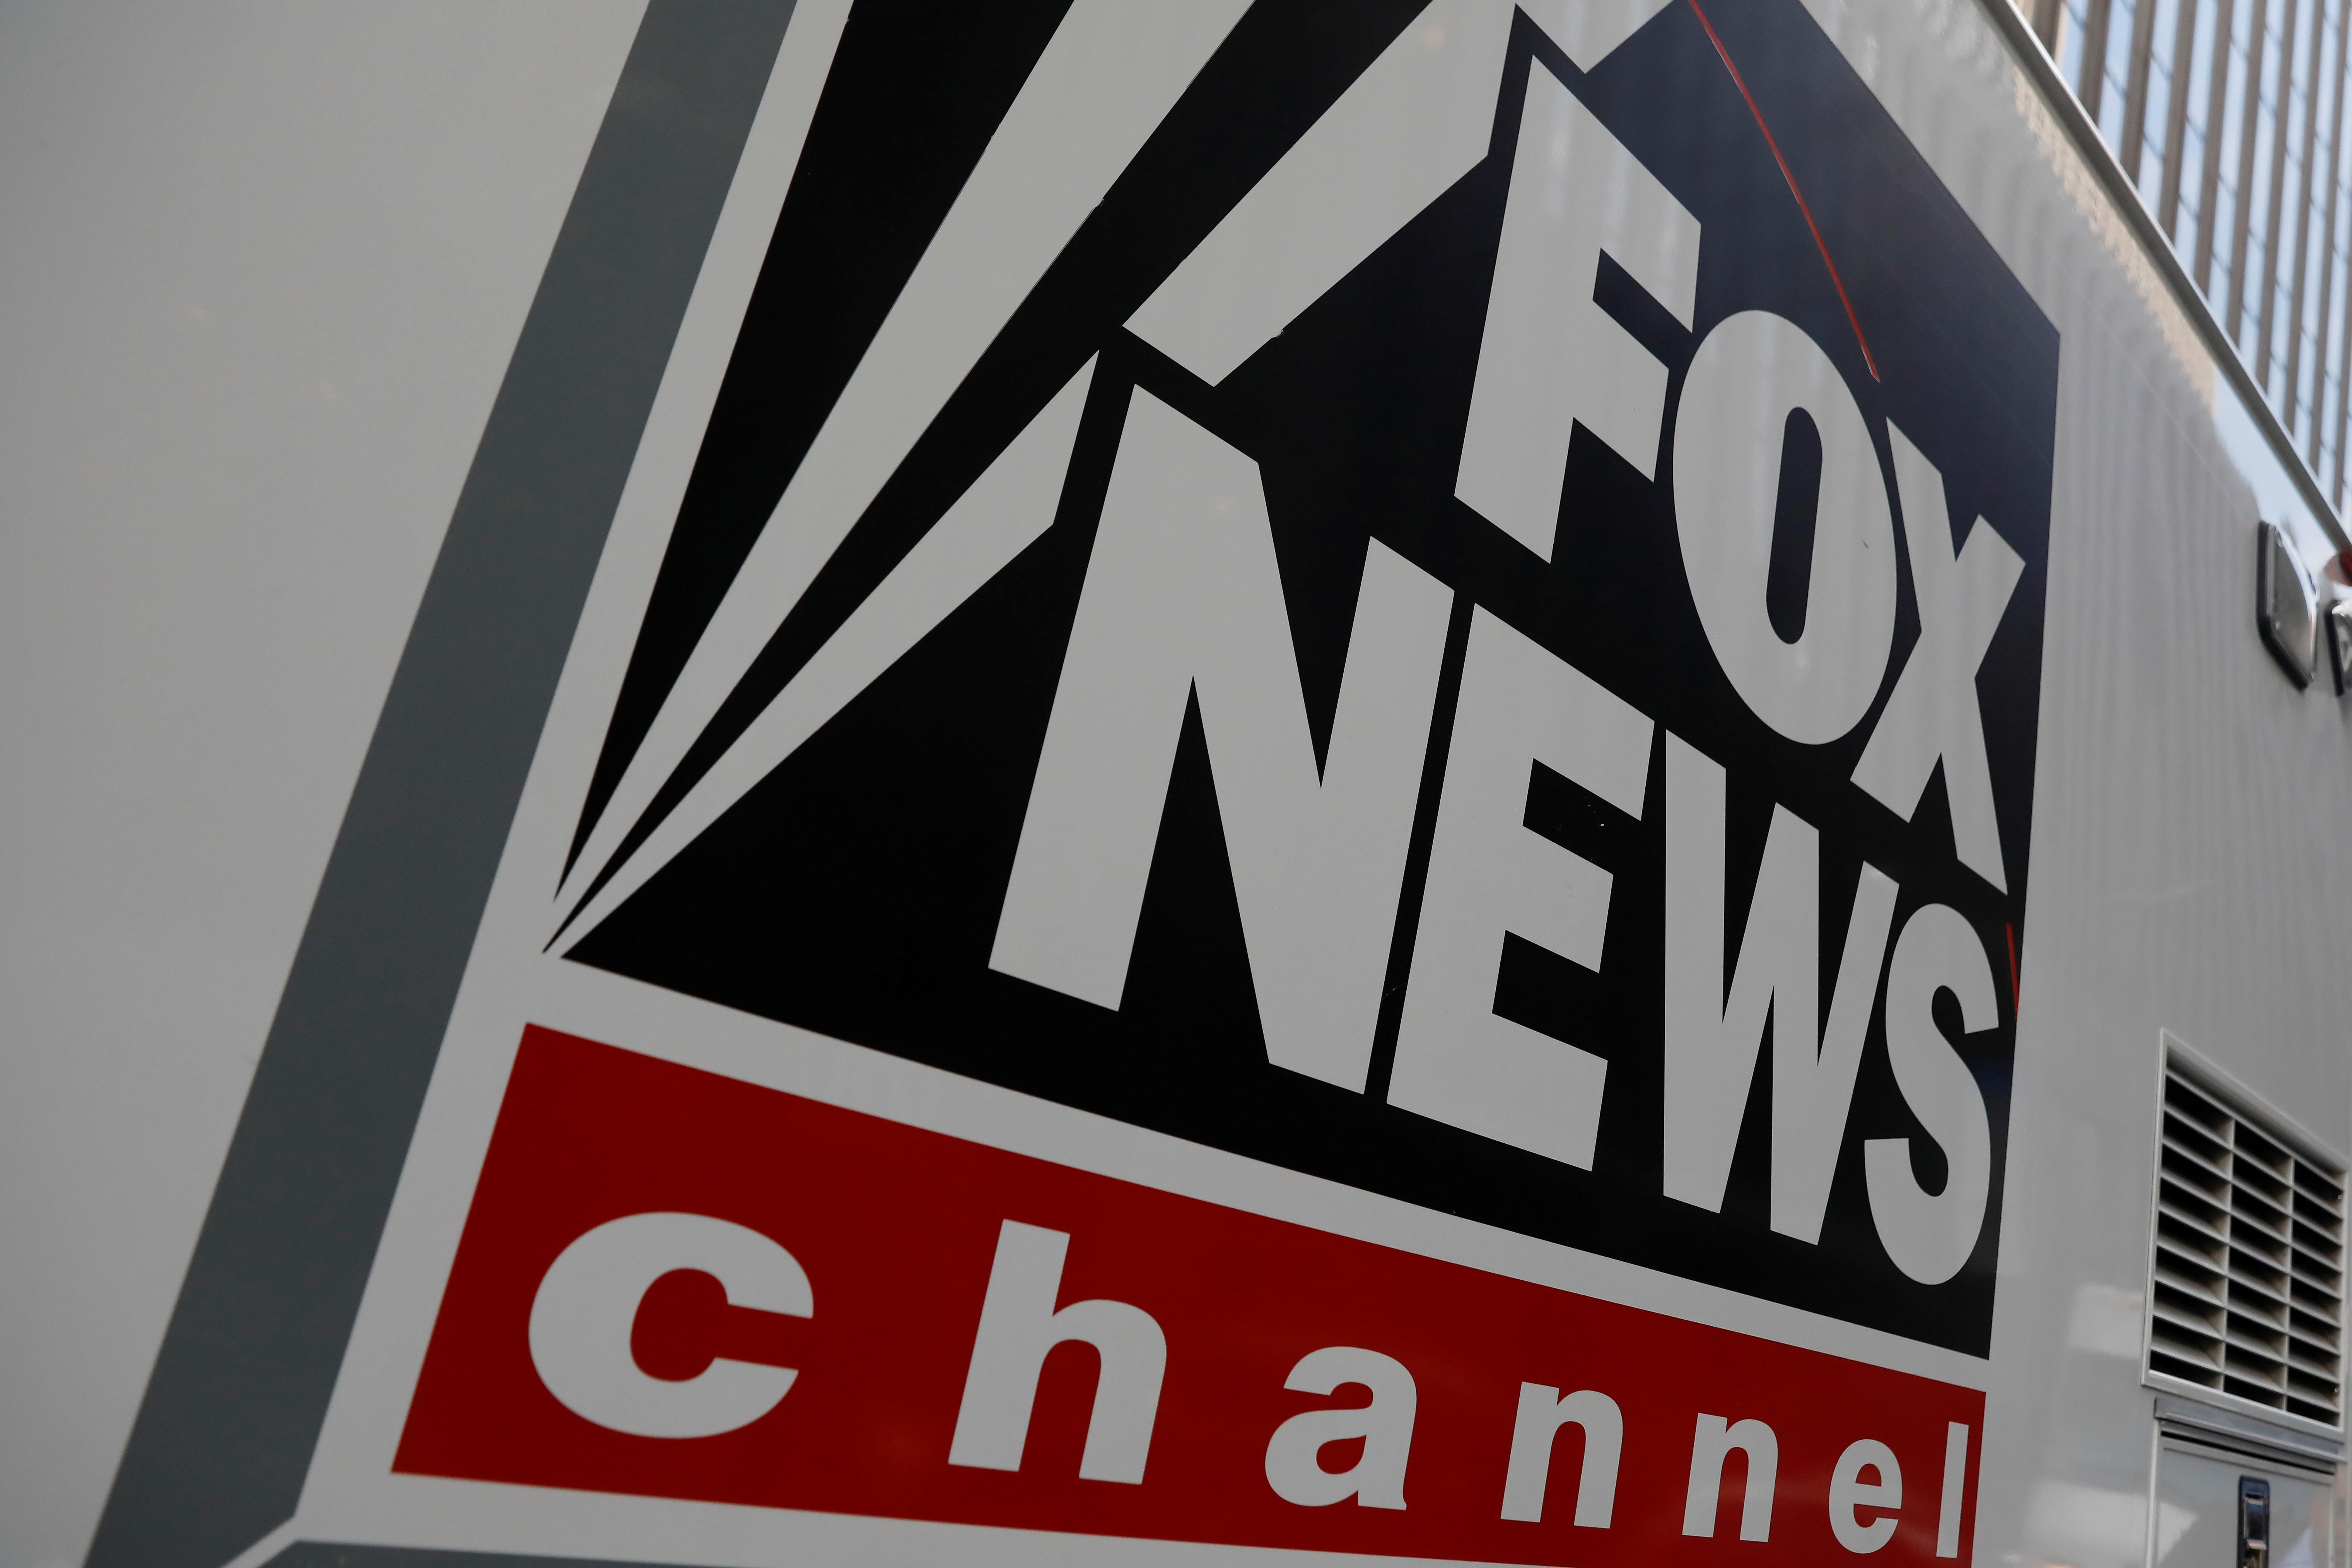 A 'Coup' Against Trump? Fox News Suggests FBI Trying To Overthrow President